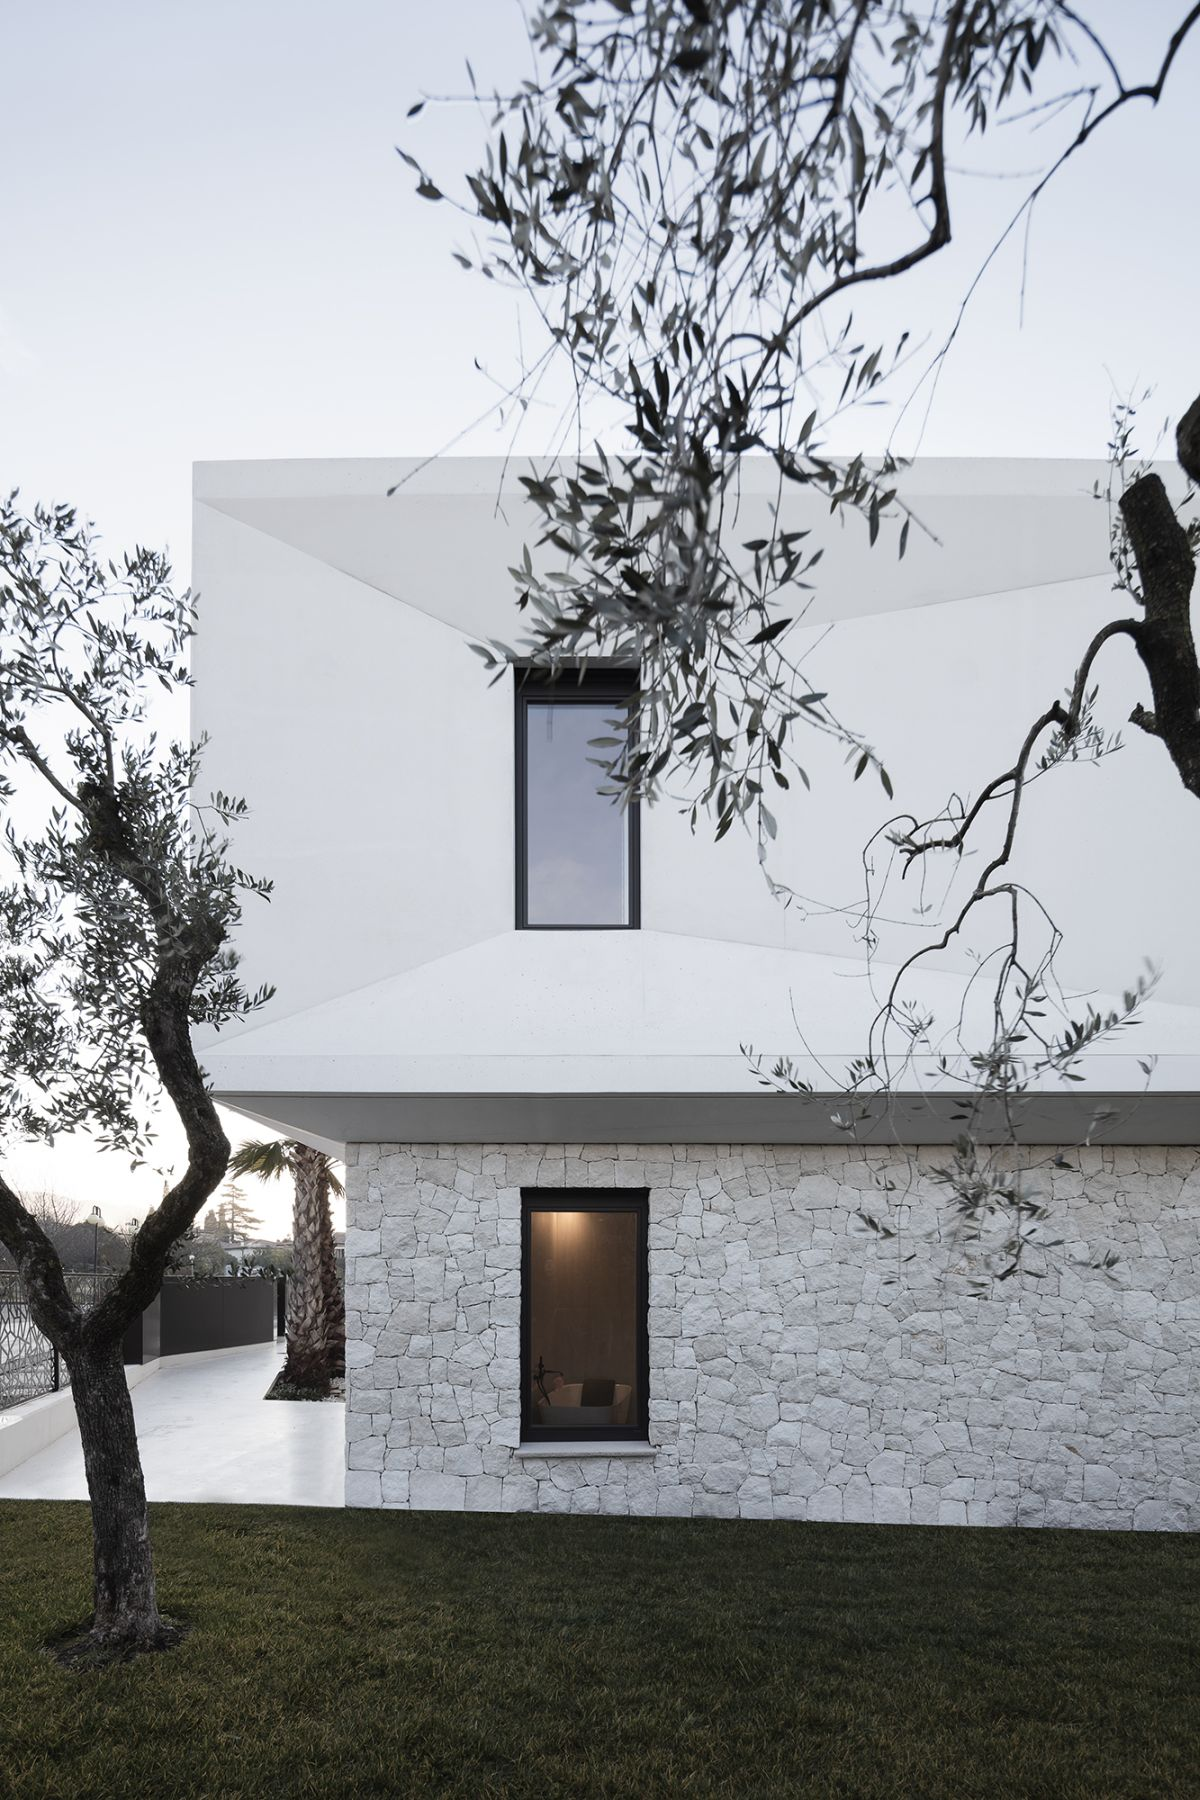 The ground floor of the house is clad in locally-sourced natural stone with gives it a beautiful texture